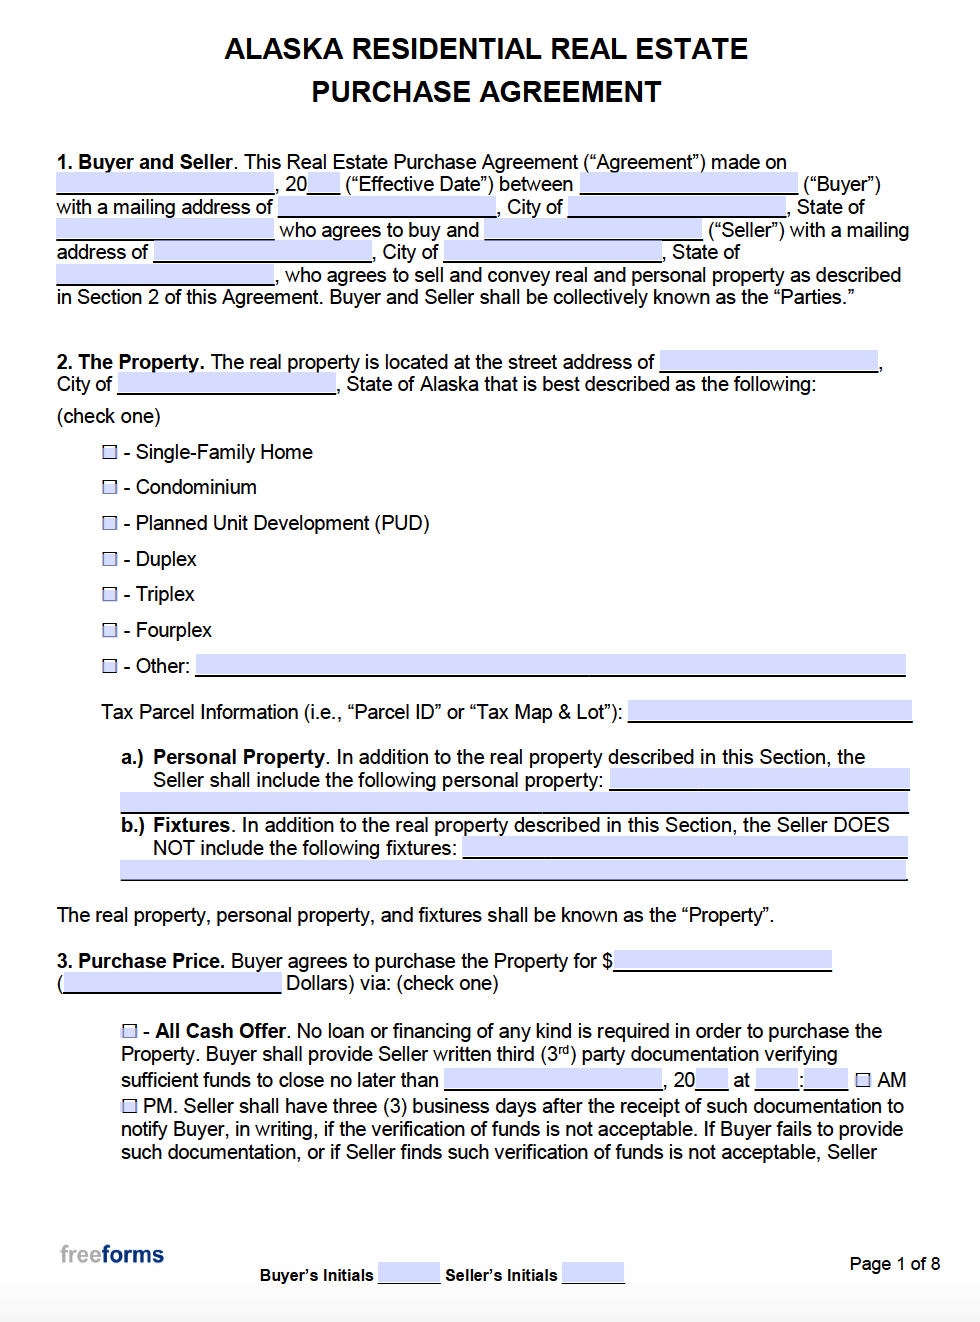 Fsbo Offer Letter Template from freeforms.com